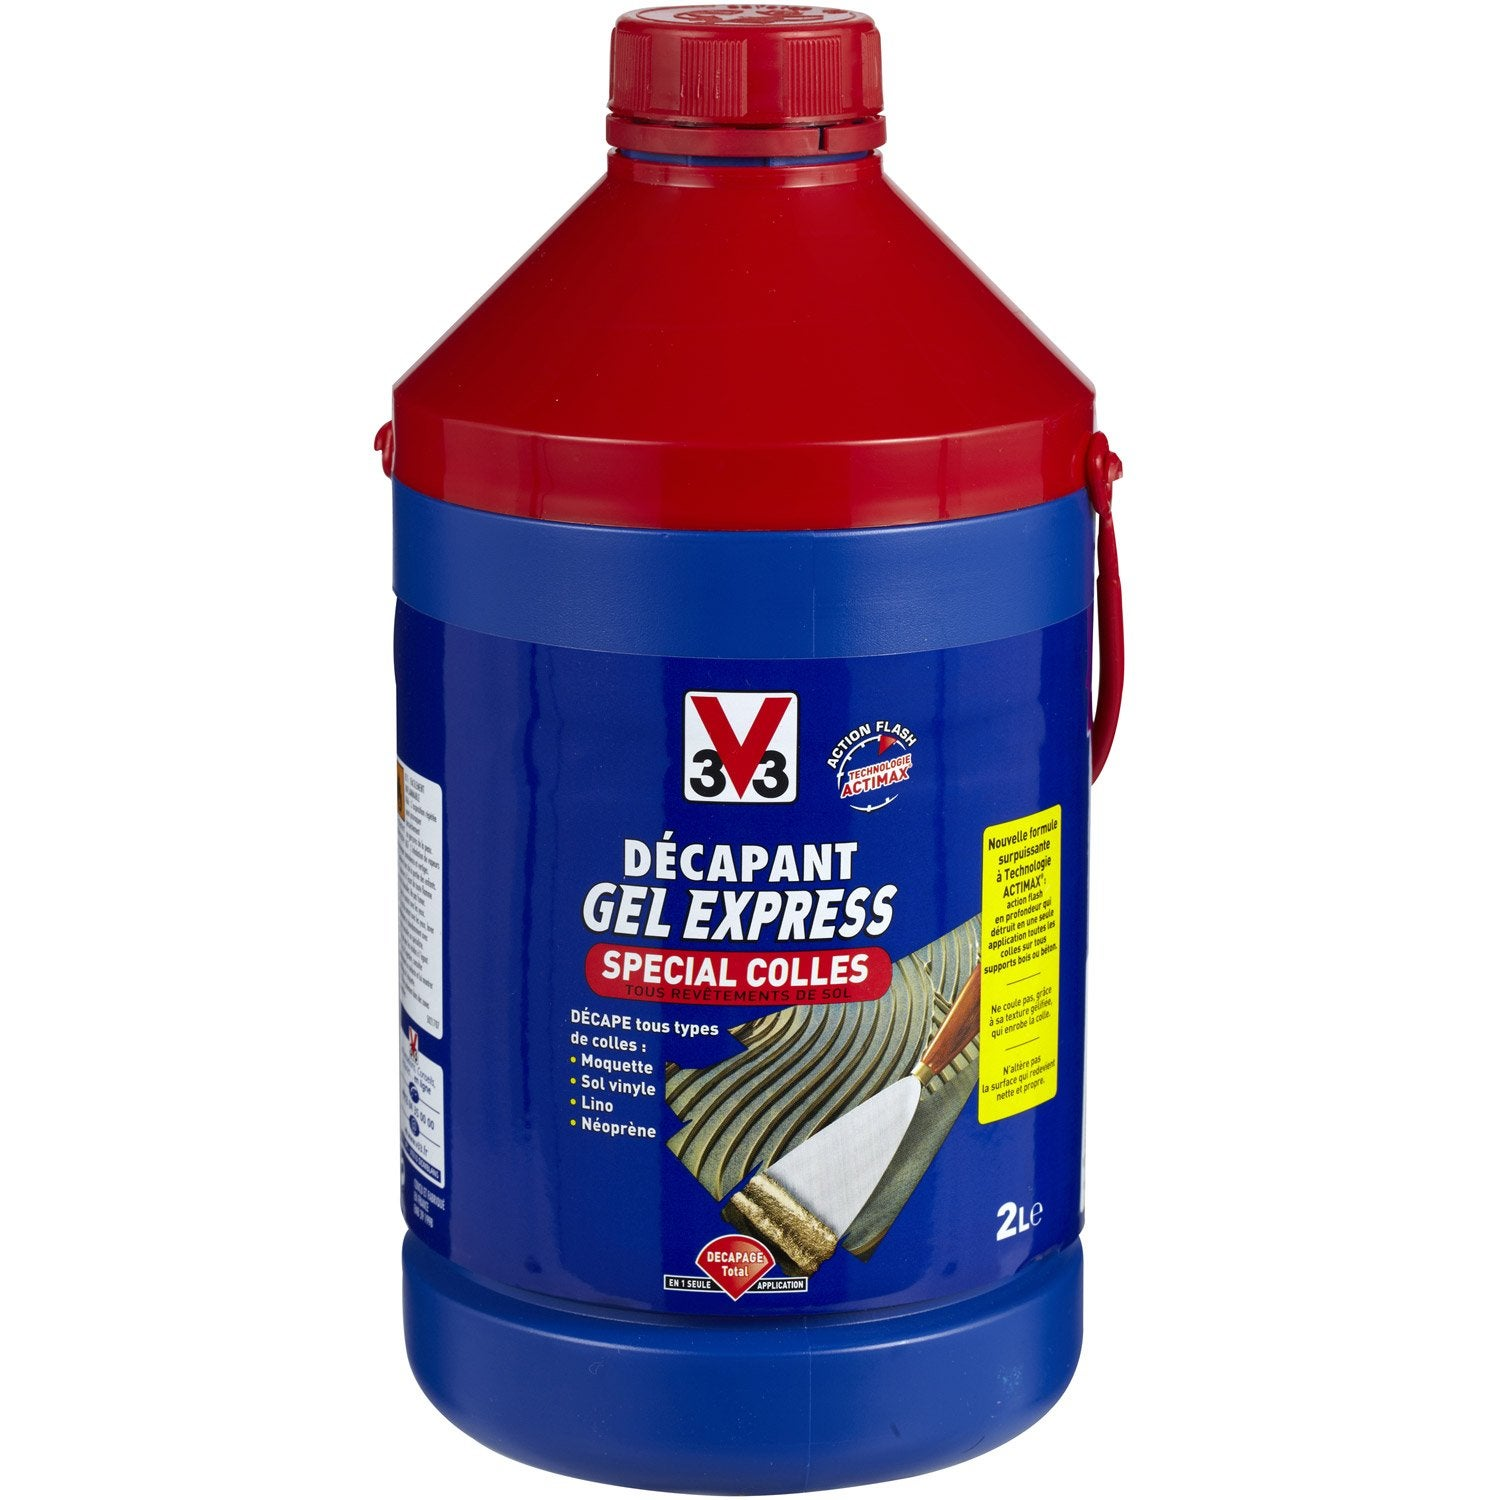 D capant colle v33 gel express 2 l leroy merlin for Colle carrelage exterieur leroy merlin